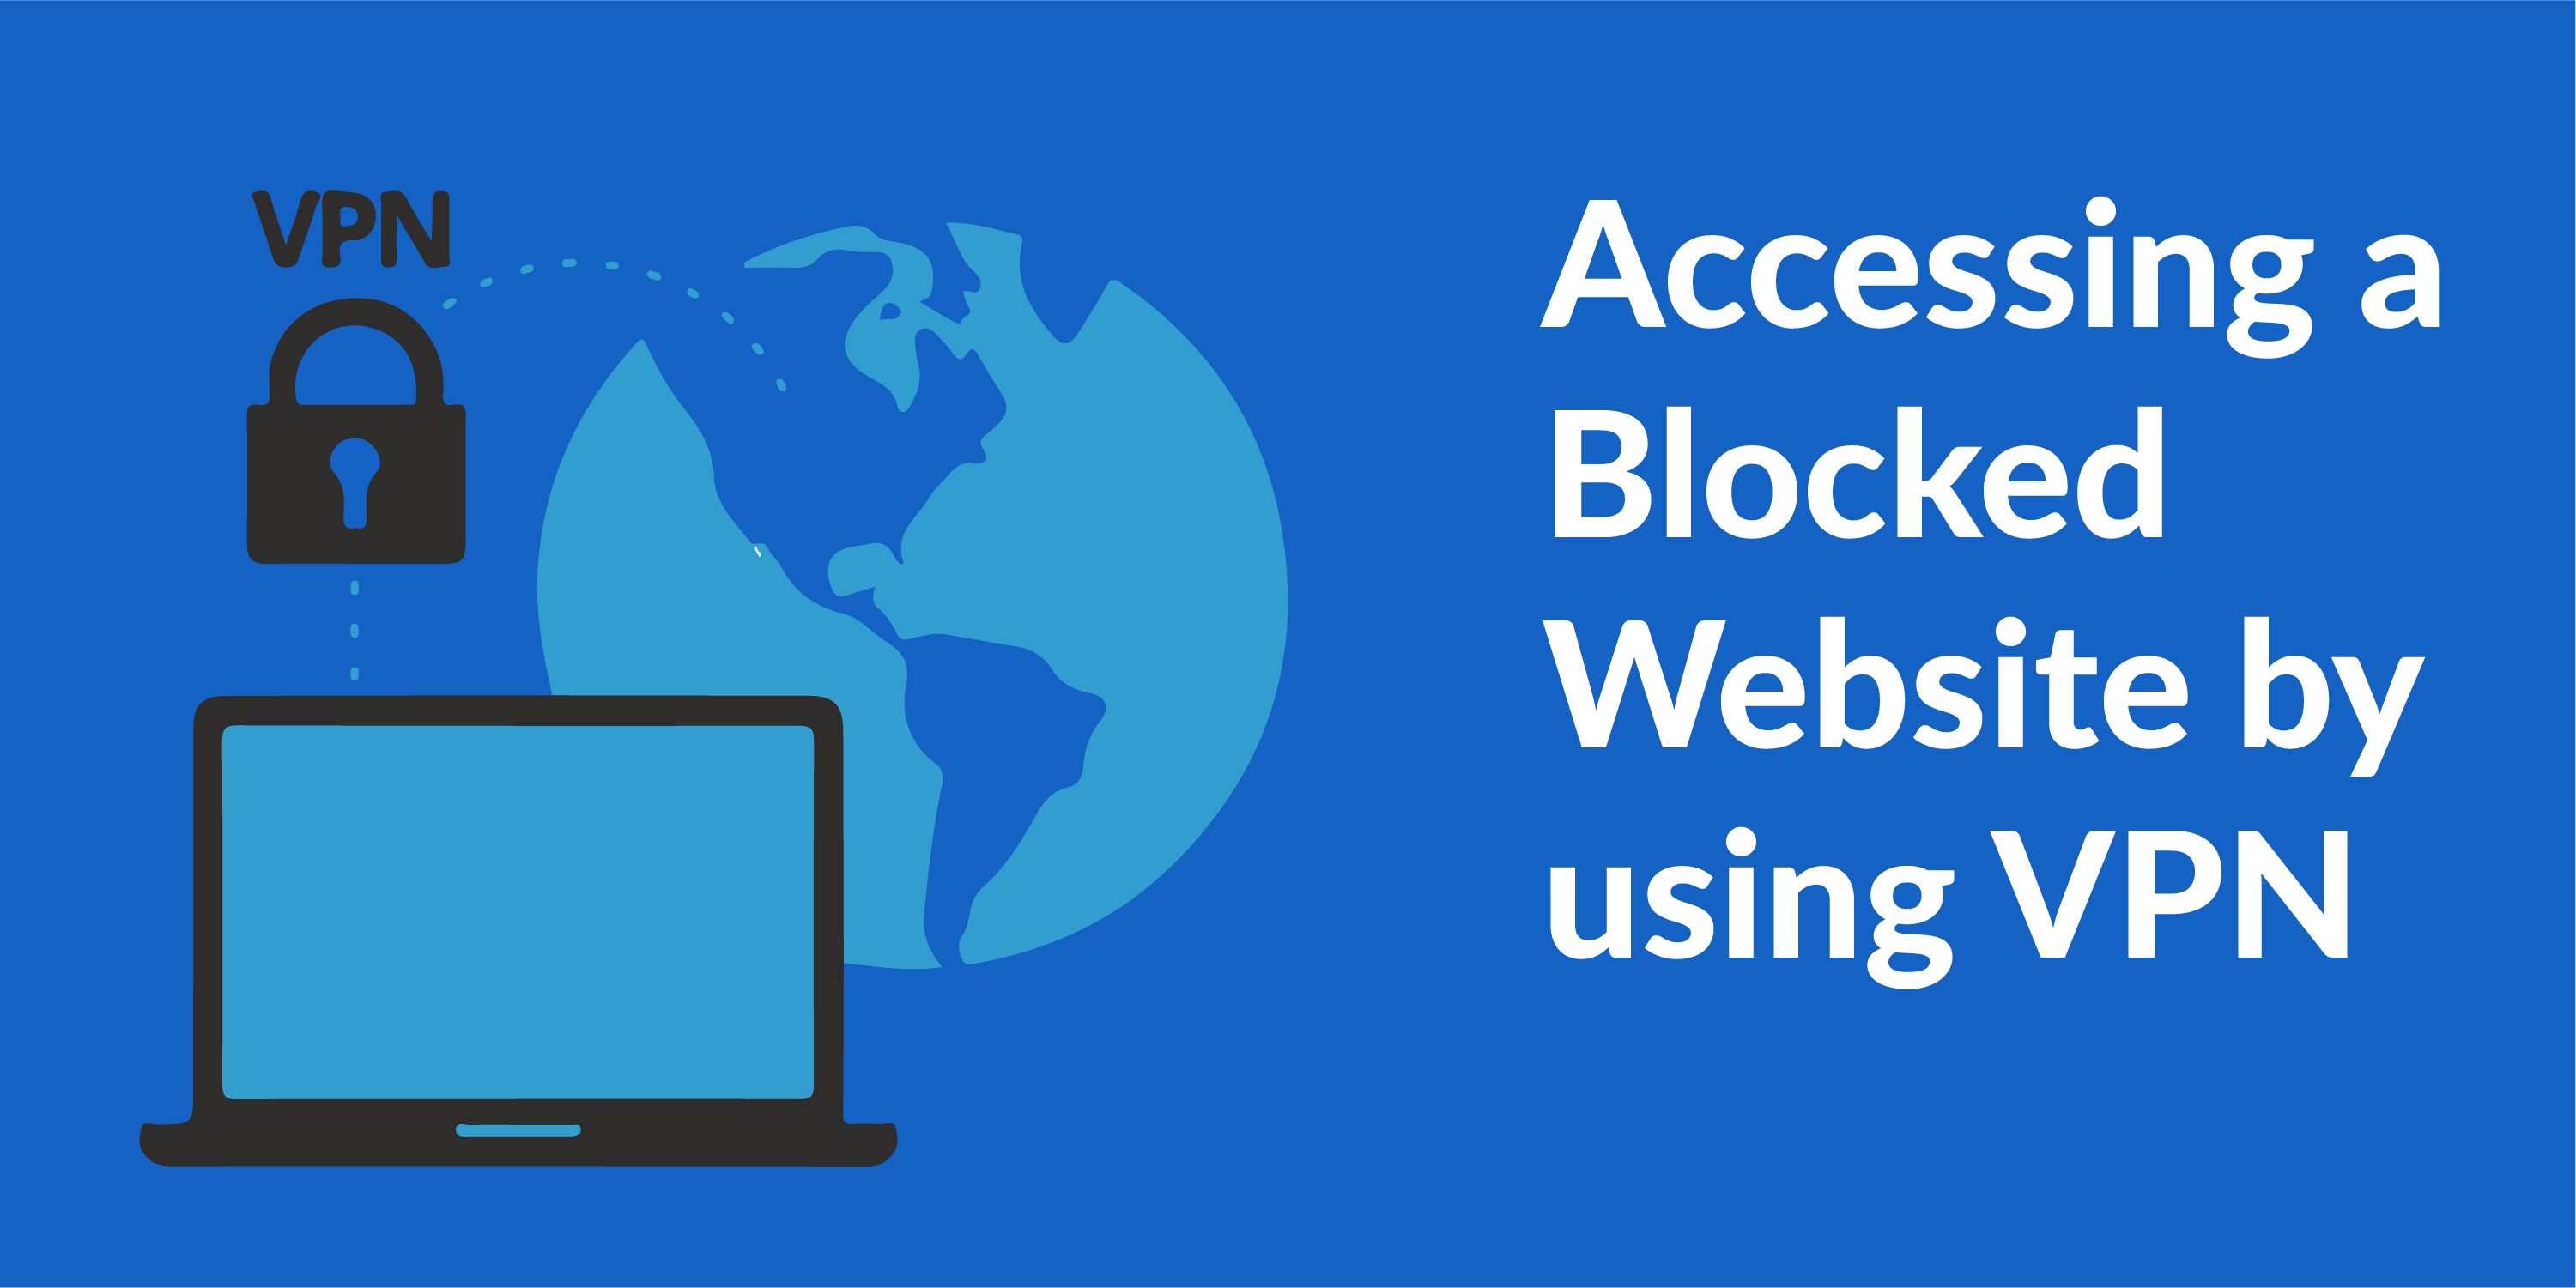 Access the Blocked Websites by Using VPN